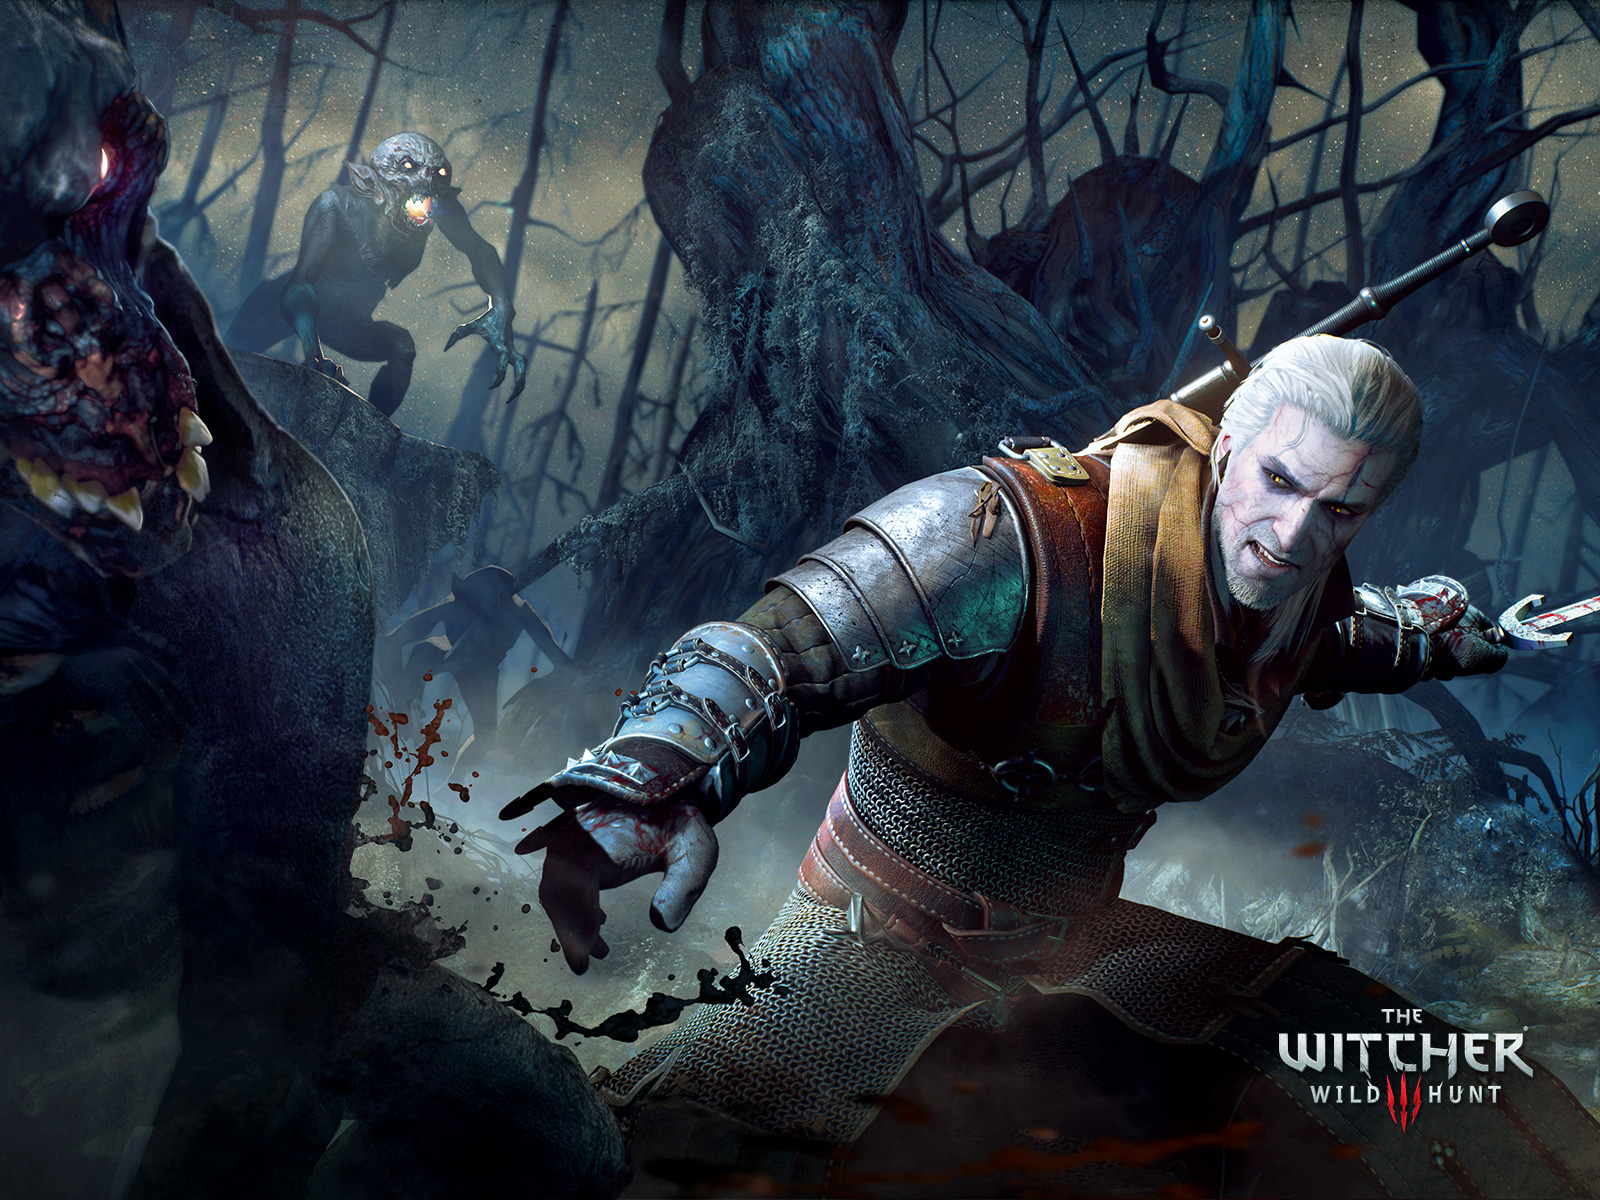 the witcher - photo #12